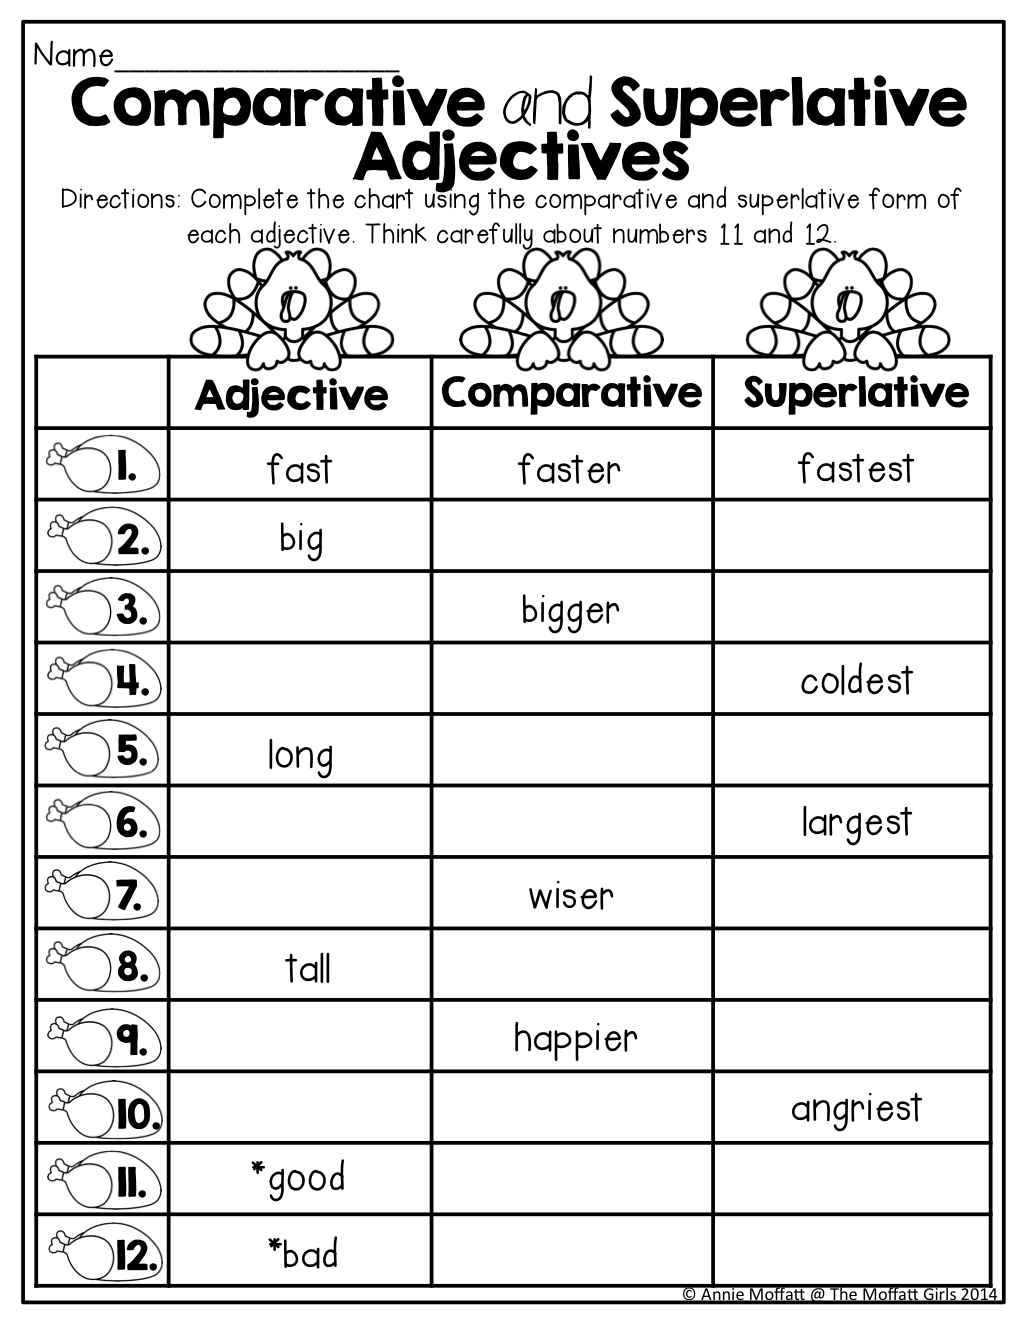 Worksheets Comparative And Superlative Adjectives Worksheet comparative and superlative adjectives tons of great printables for 2nd grade